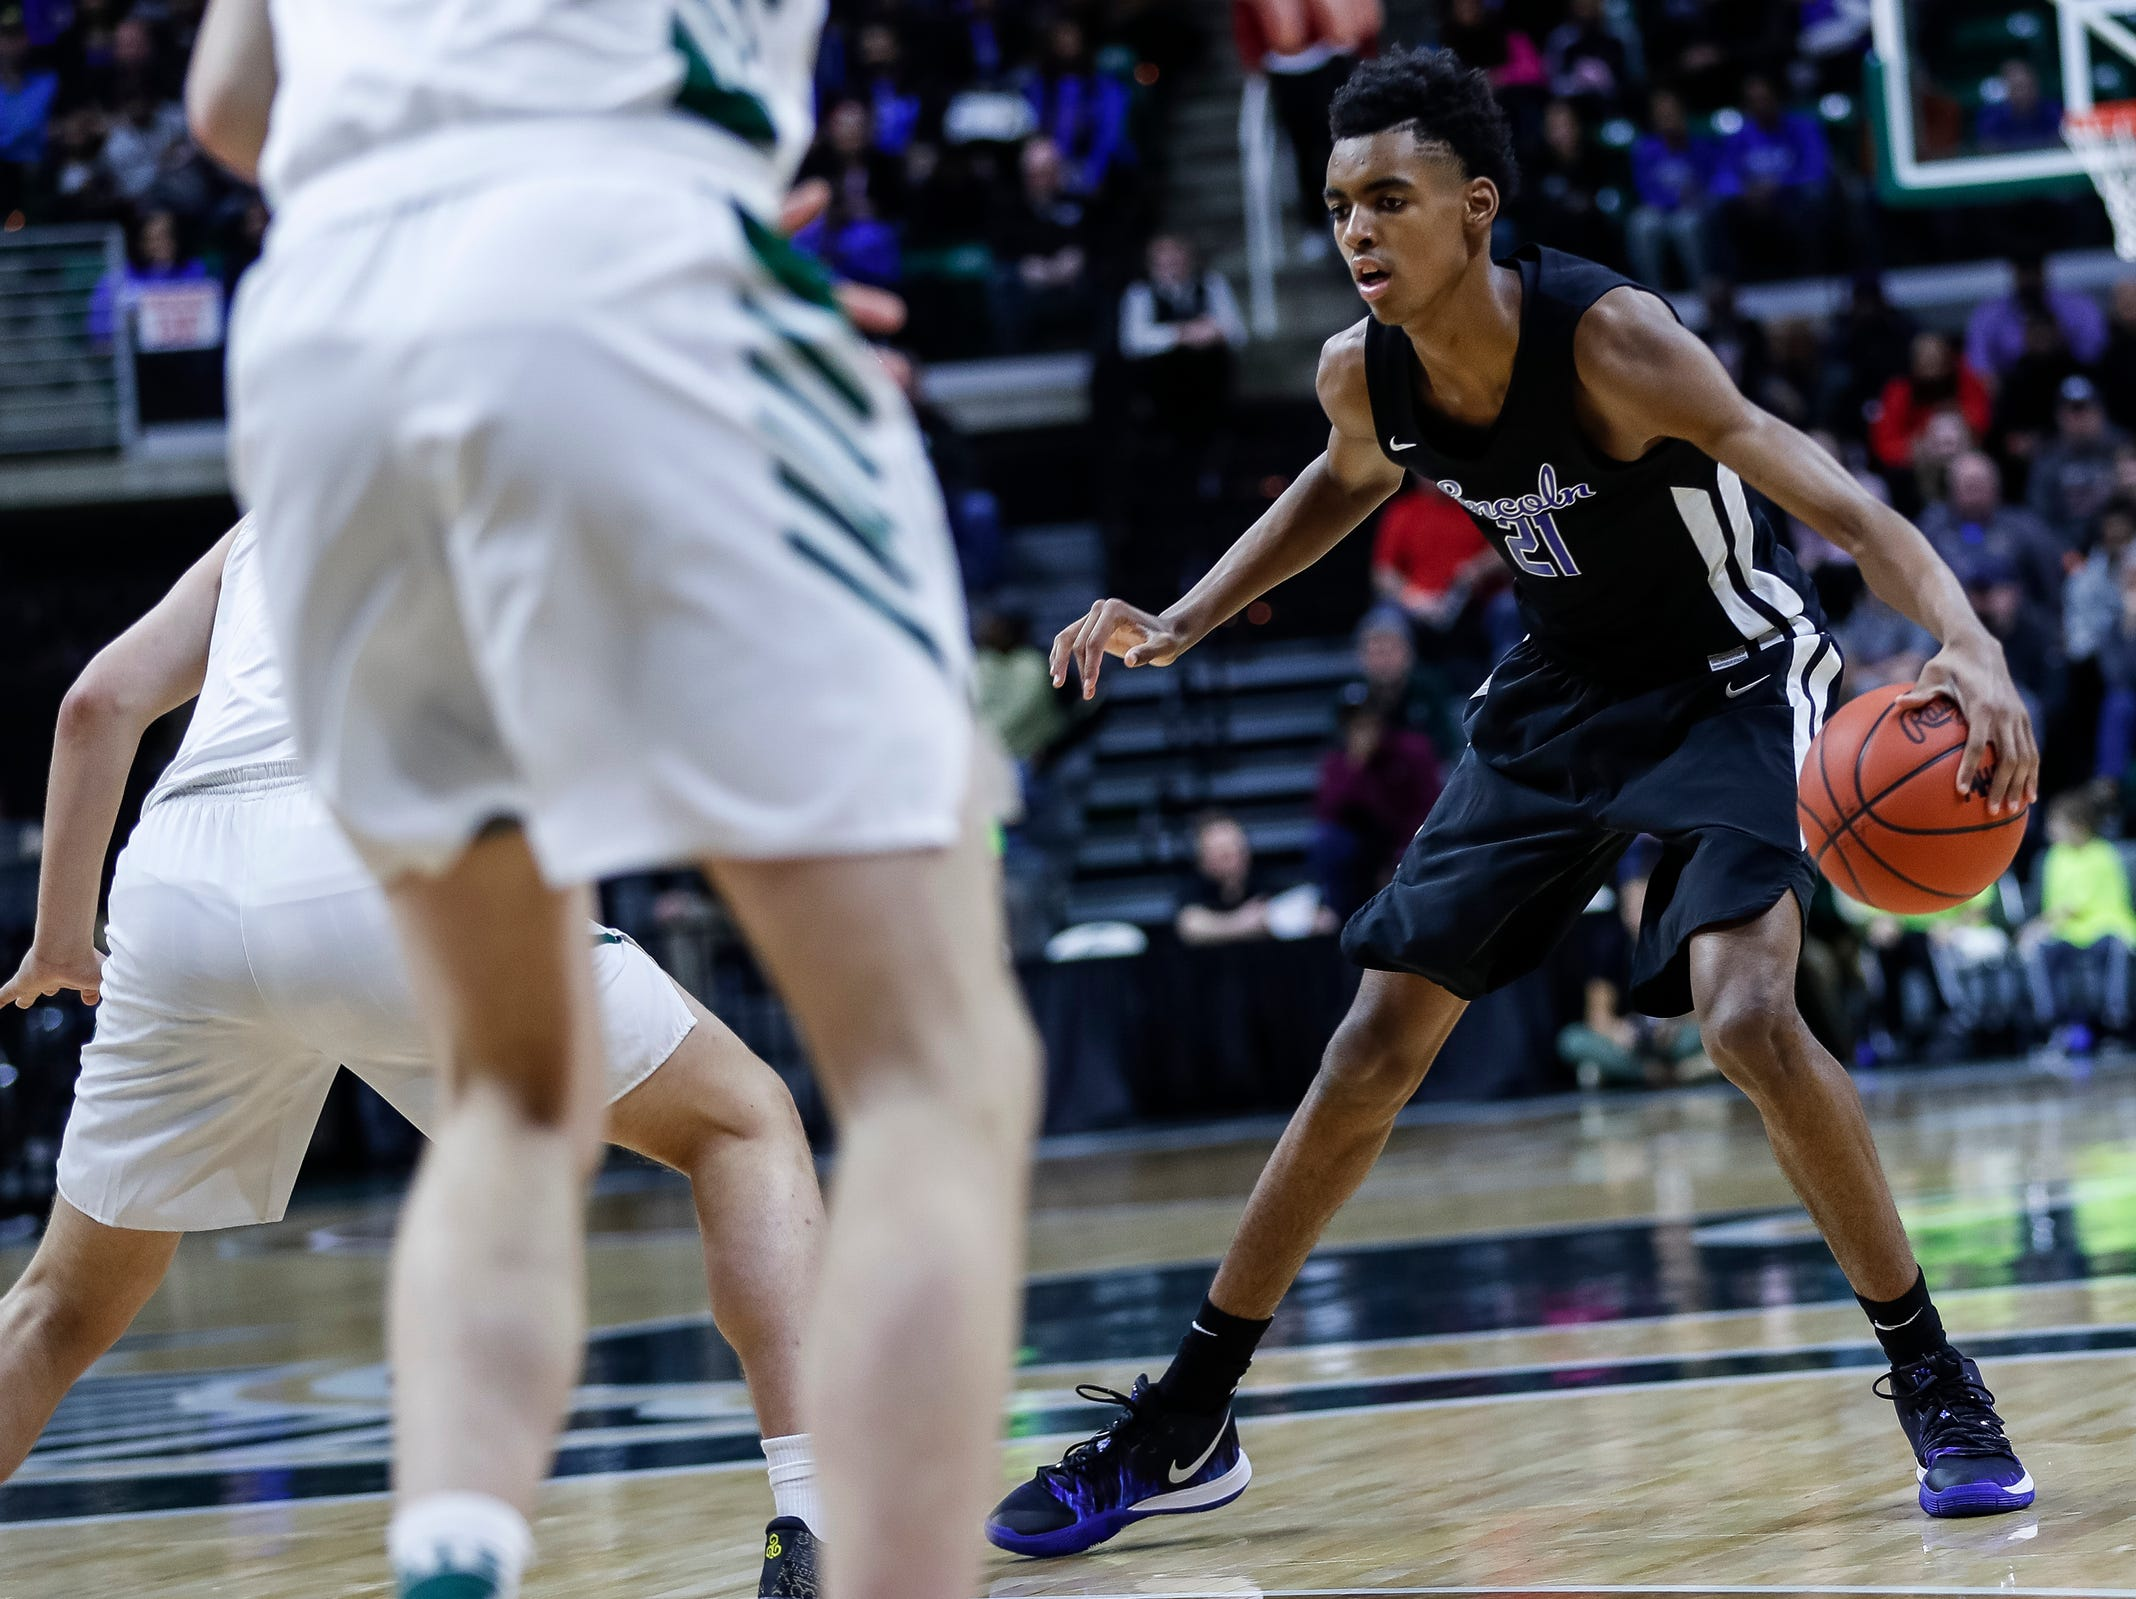 Ypsilanti Lincoln's Emoni Bates (21) dribbles against Howell during the first half of MHSAA Division 1 semifinal at the Breslin Center in East Lansing, Friday, March 15, 2019.